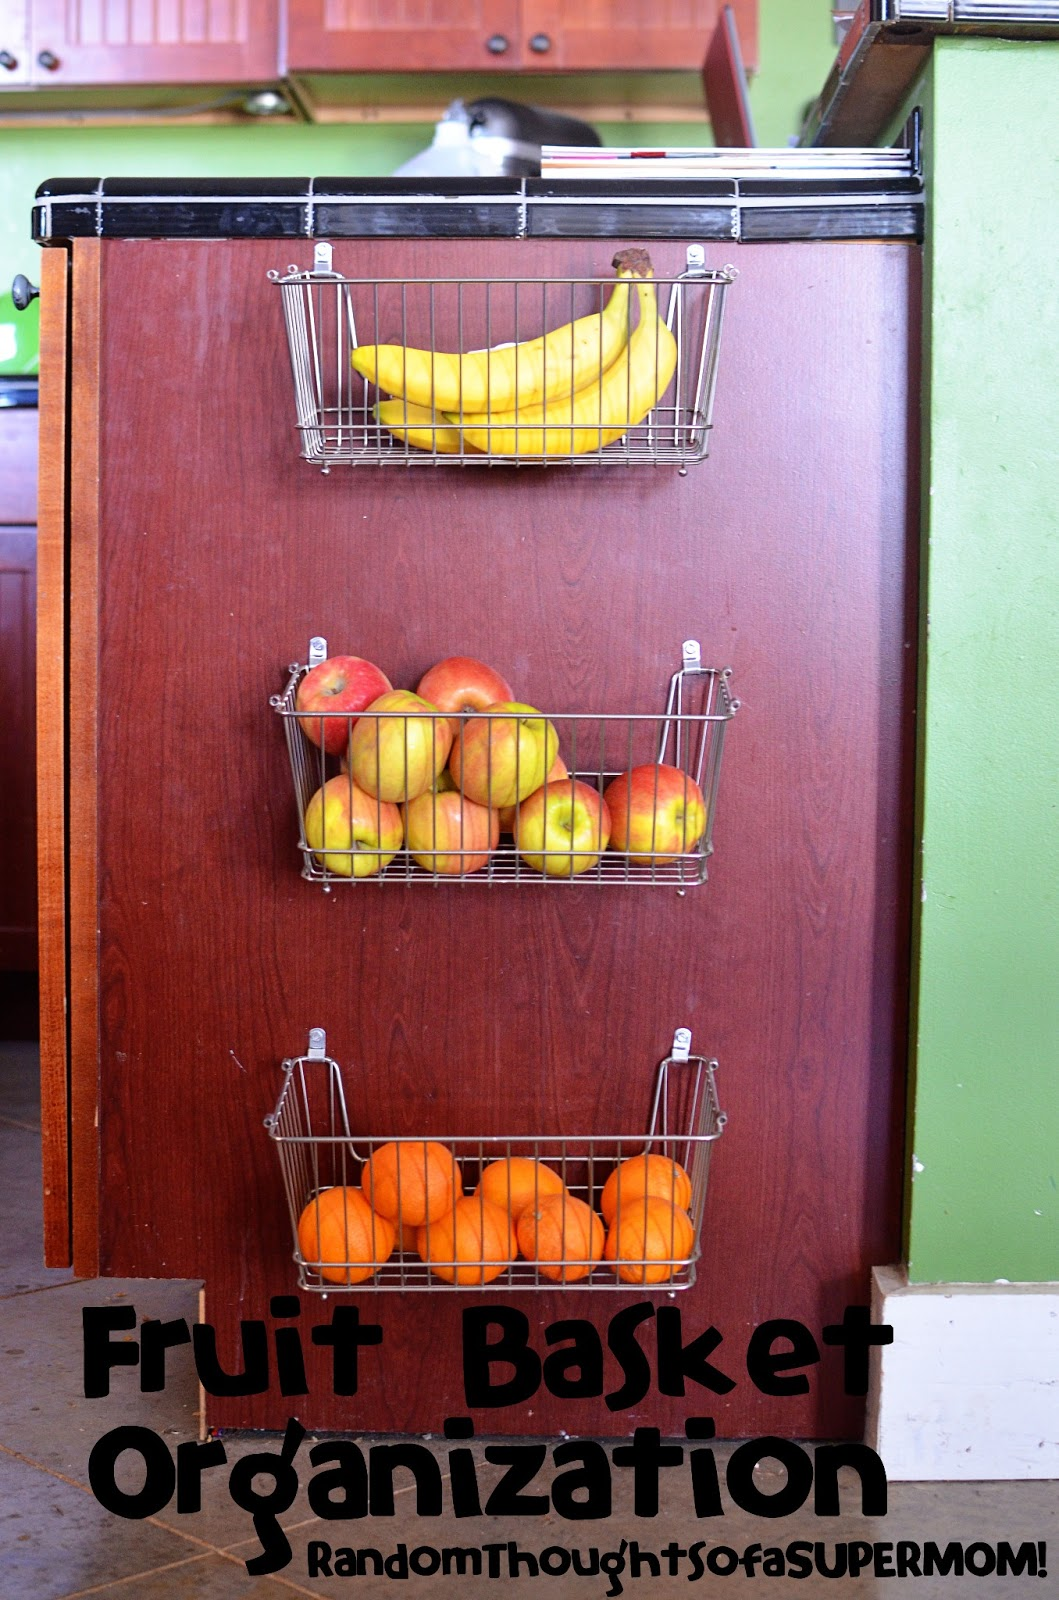 Genial Fruit Basket Organization